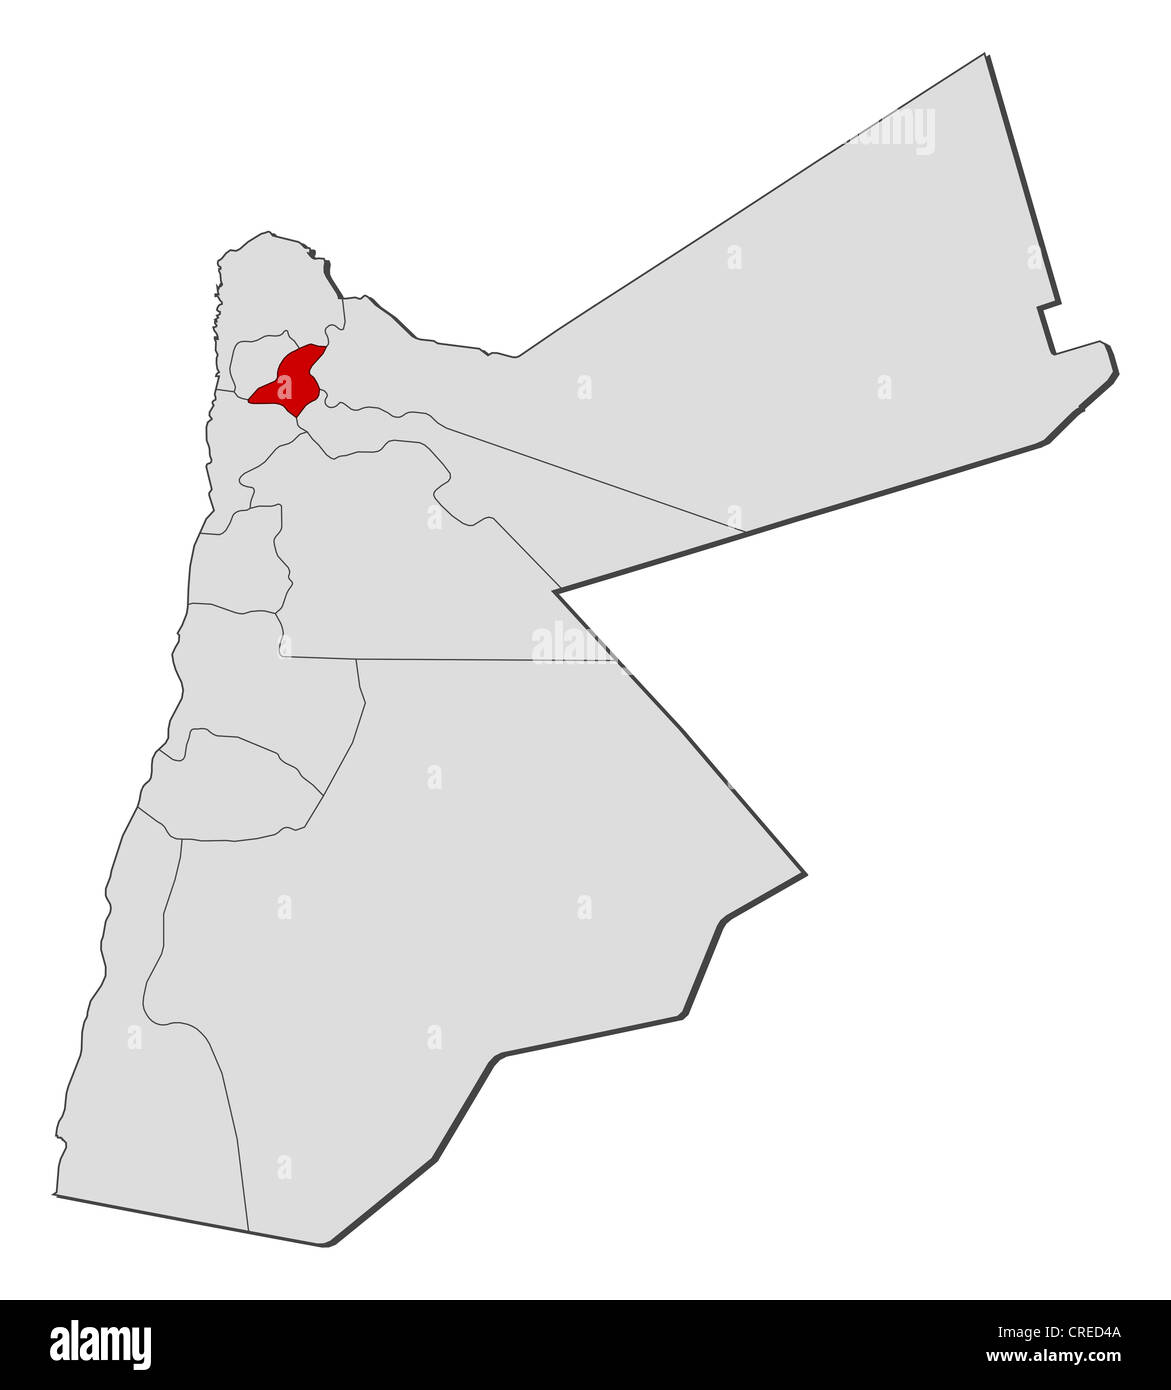 Jordan Political Map.Political Map Of Jordan With The Several Governorates Where Jerash